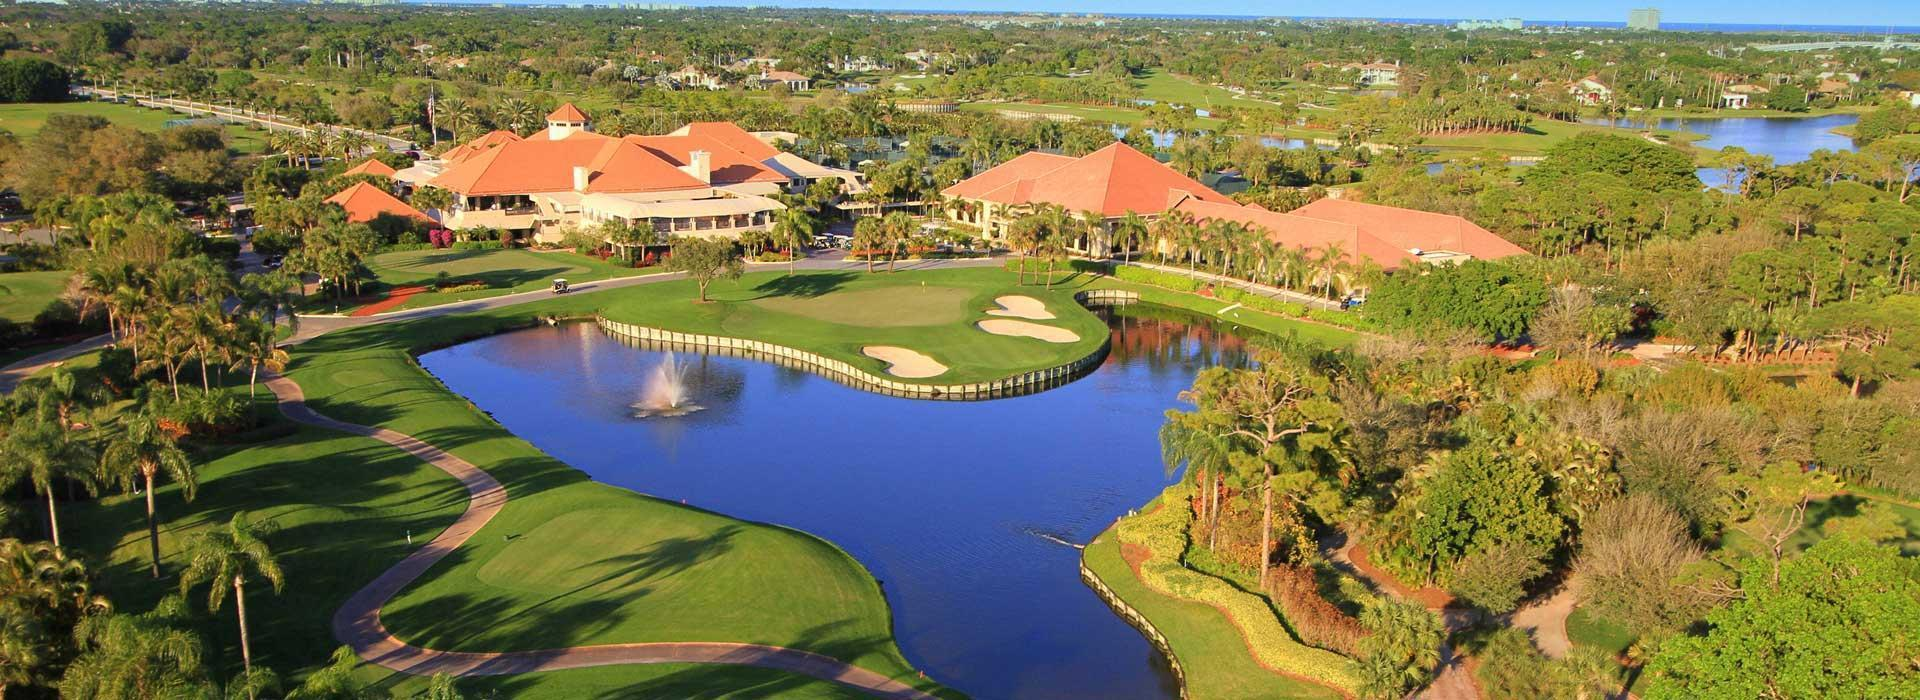 Frenchman S Creek Homes For Sale Palm Beach Gardens Real